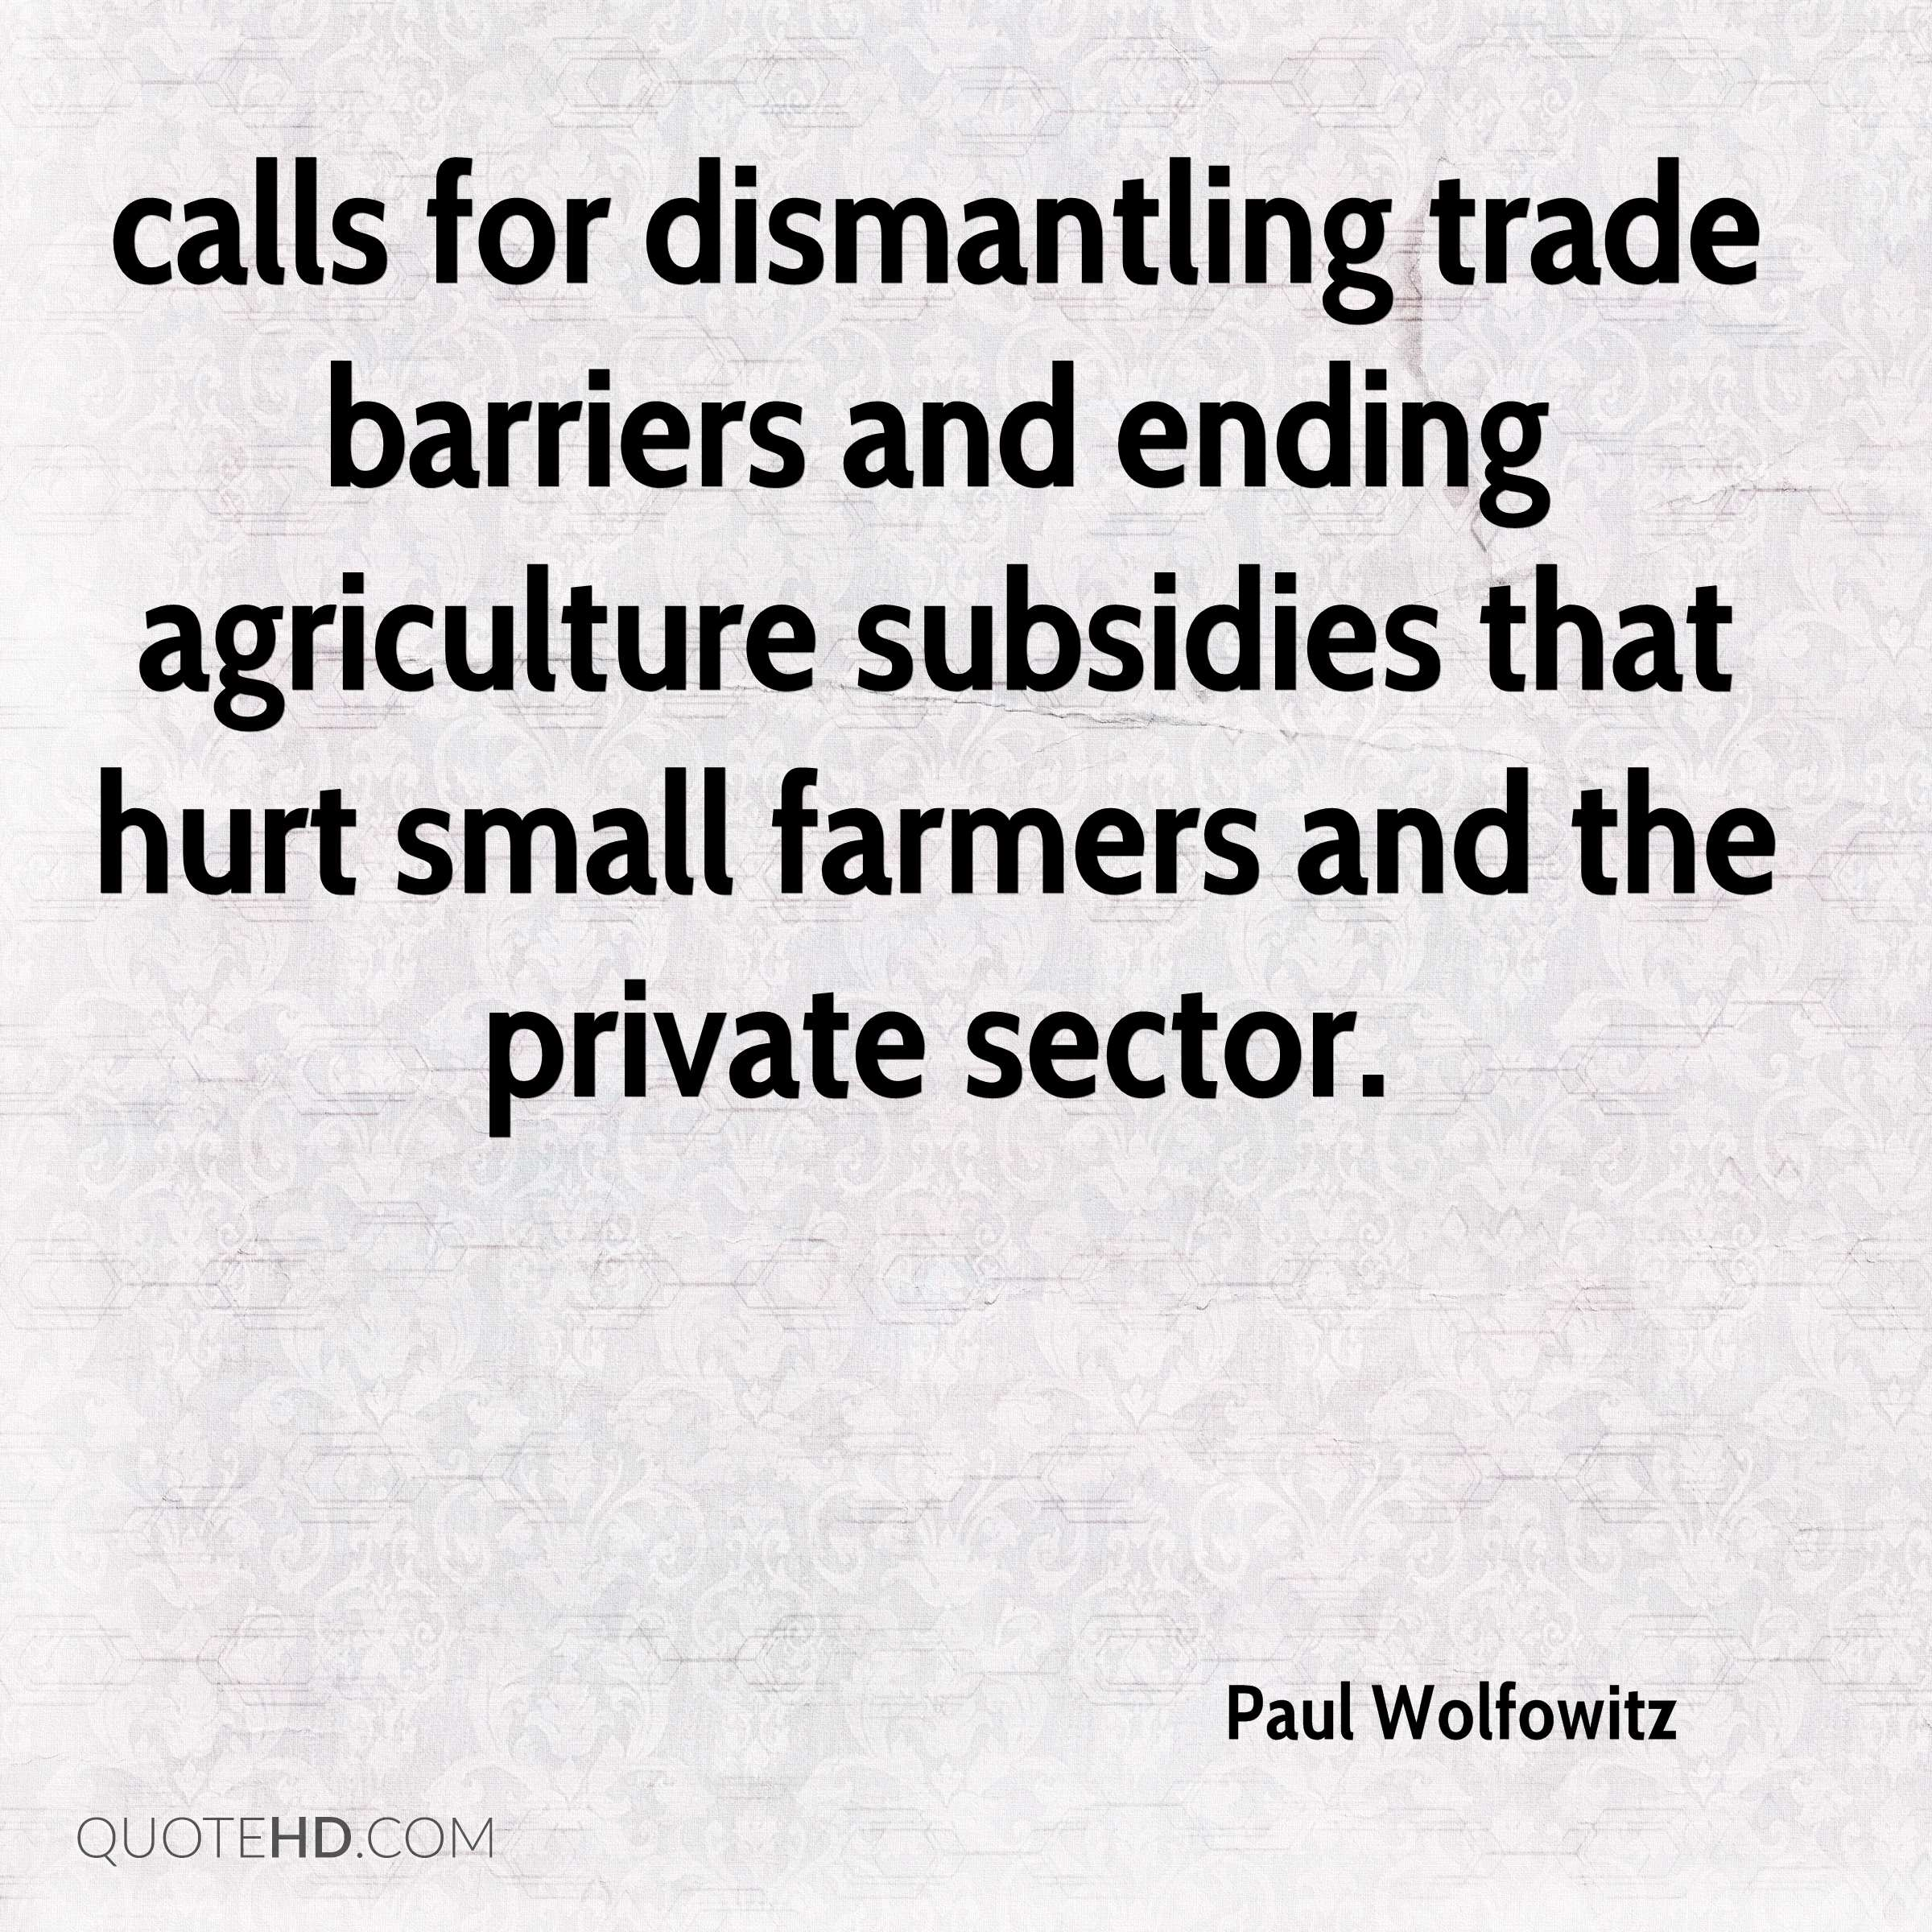 calls for dismantling trade barriers and ending agriculture subsidies that hurt small farmers and the private sector.